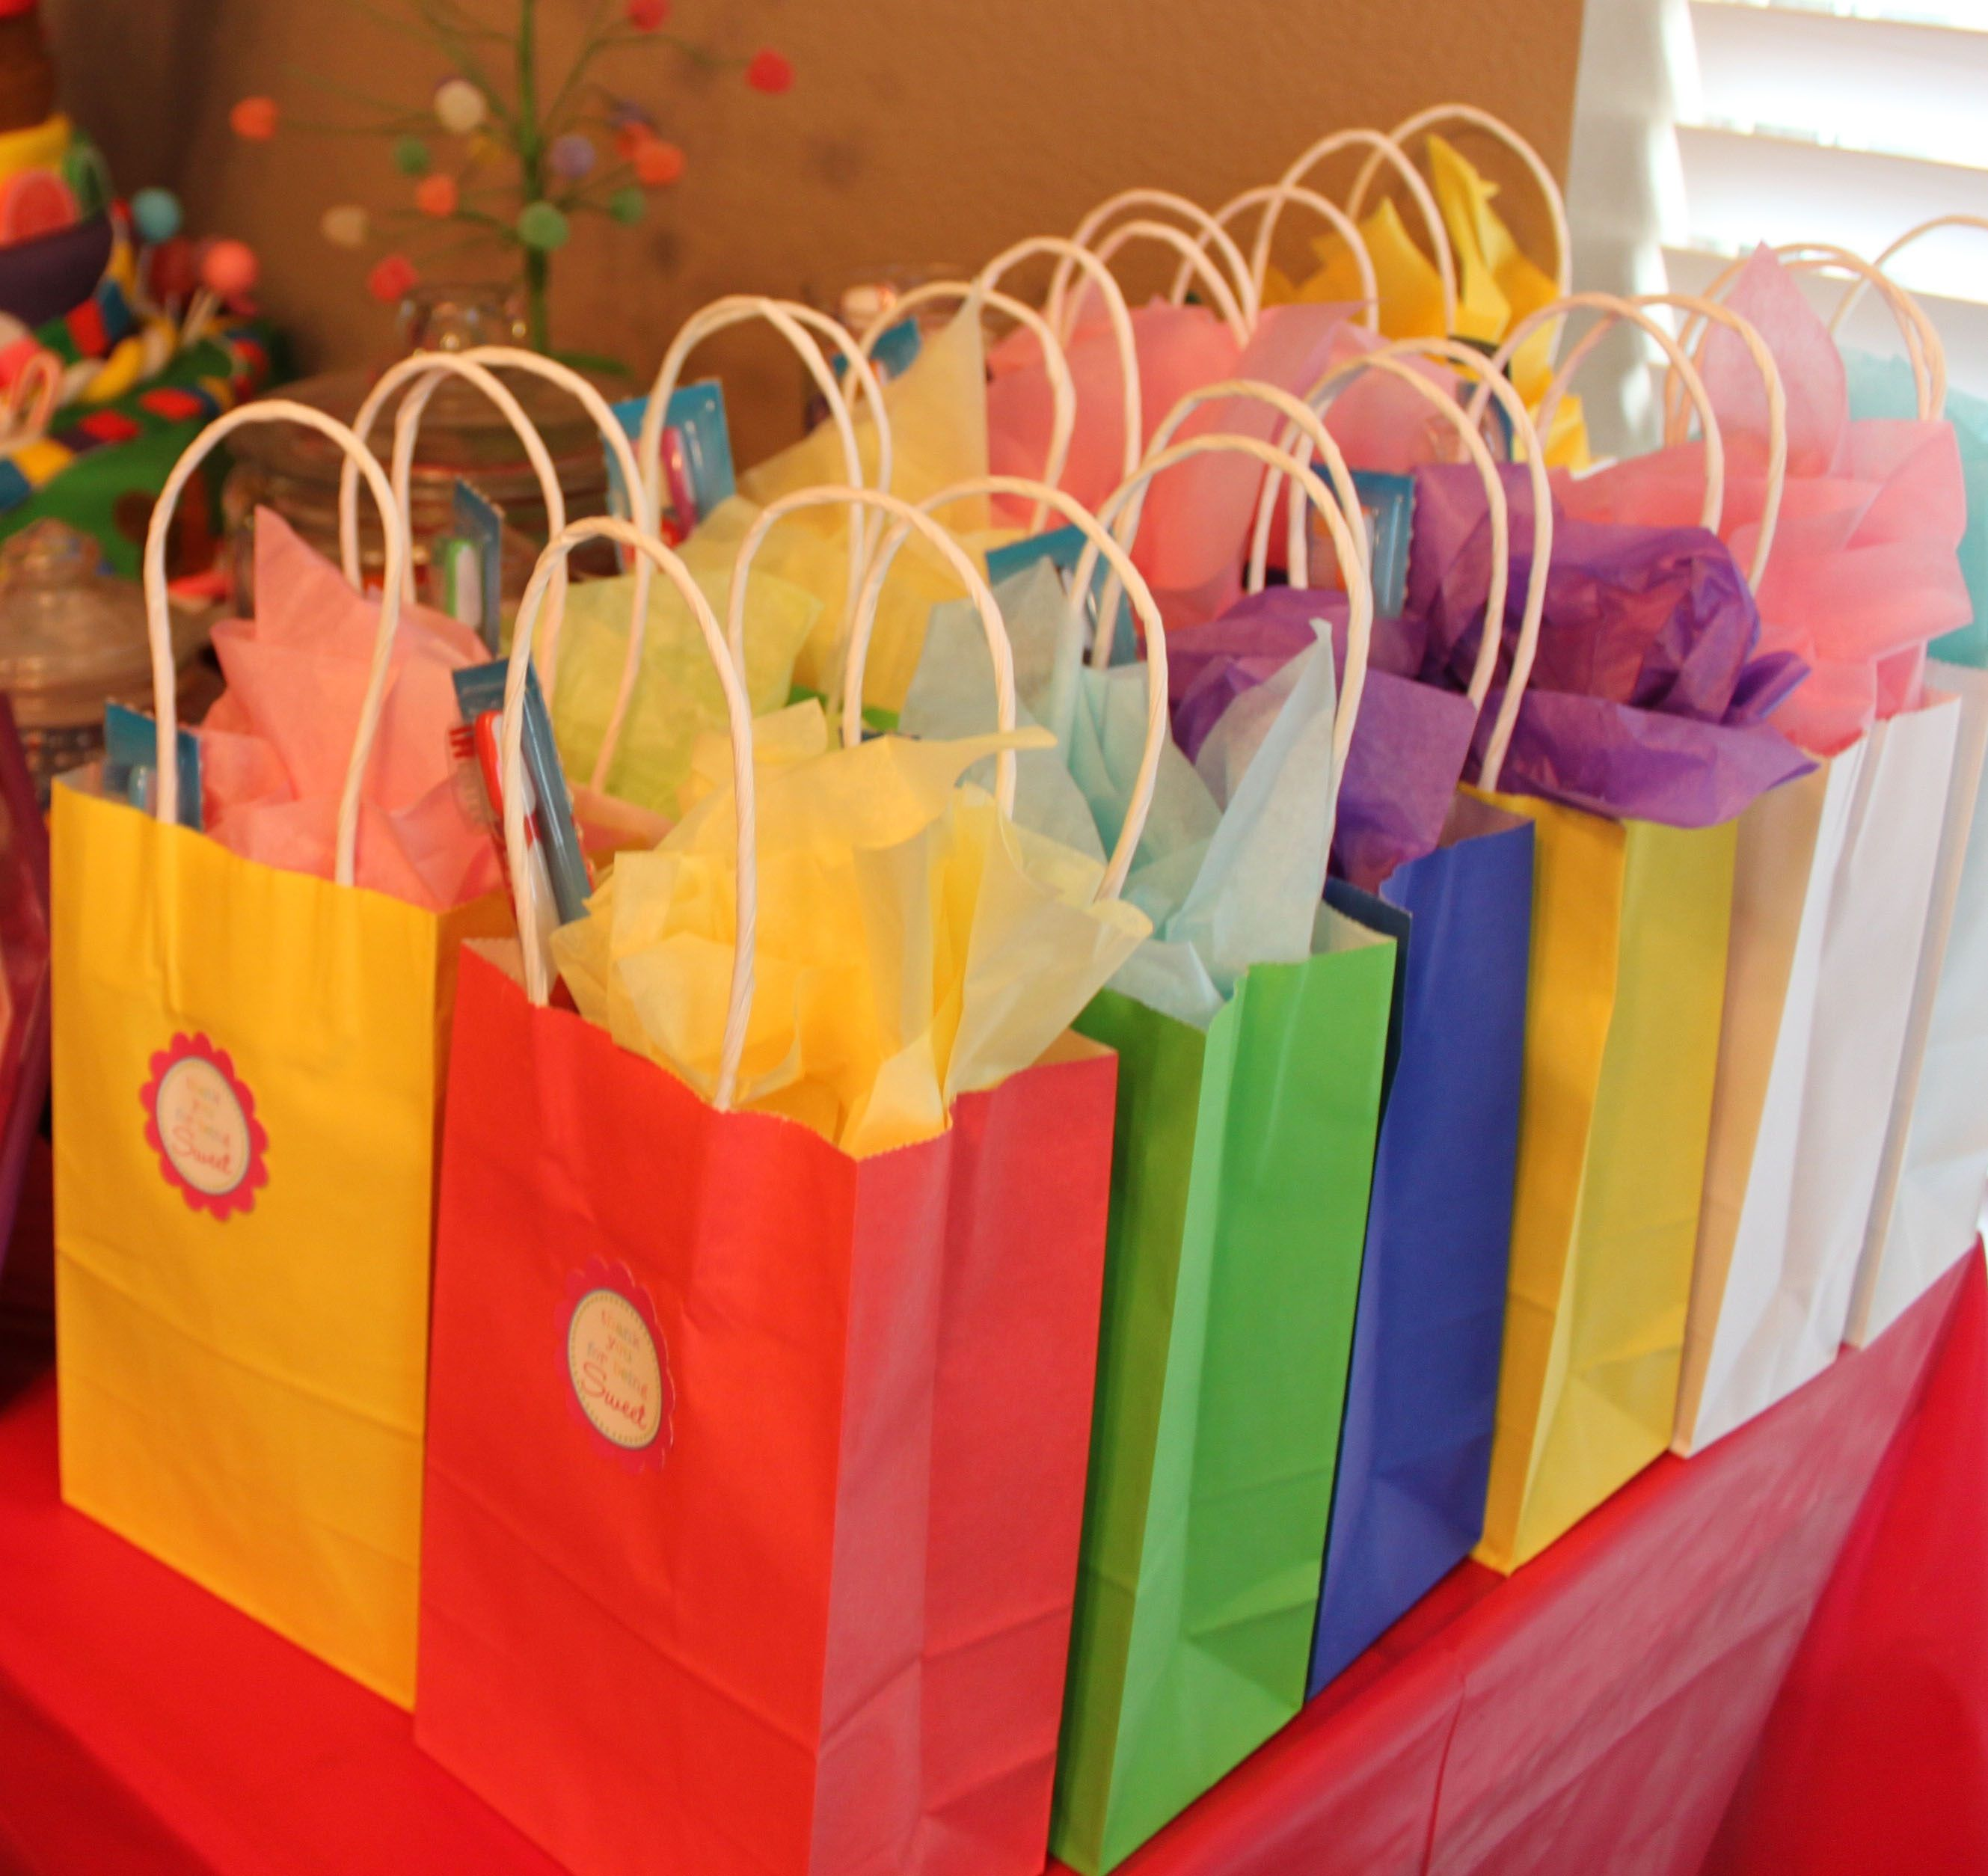 15 Fun Goodie Bag Ideas Without Candy | Candyland, Birthdays and ...